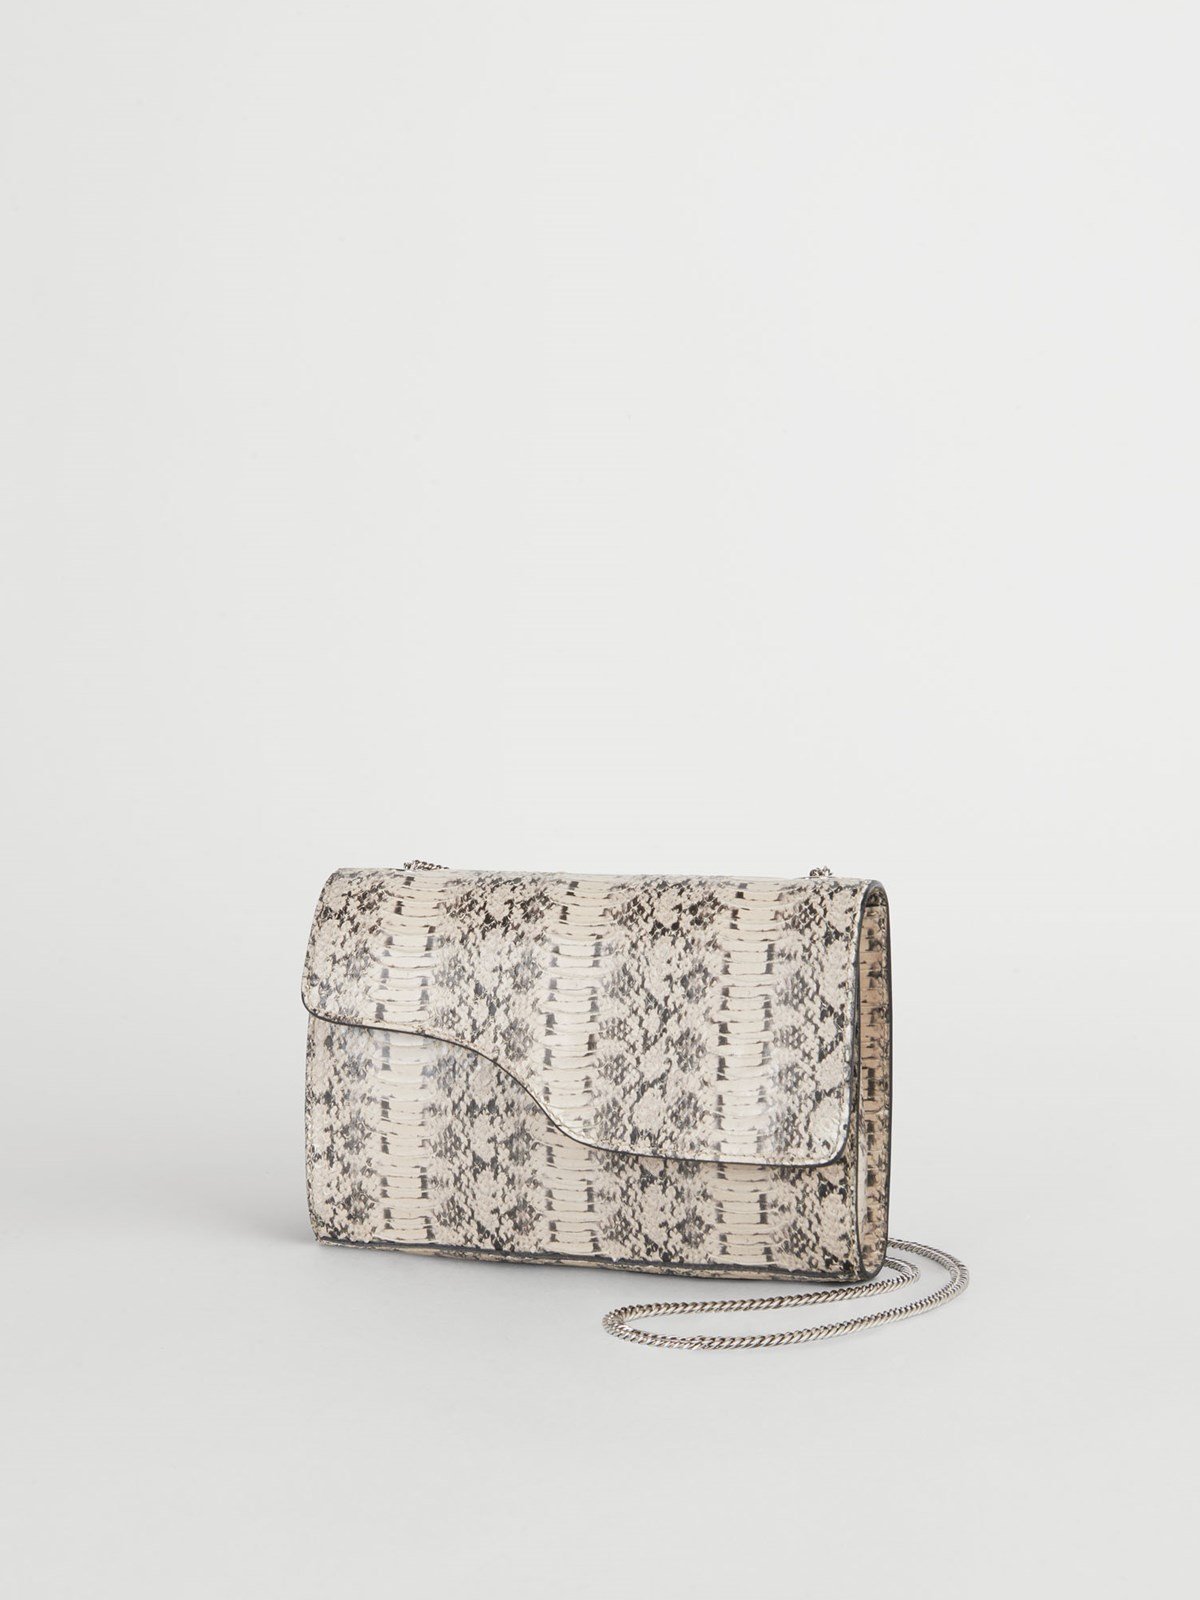 Pomarance Cloud Crossbody bag